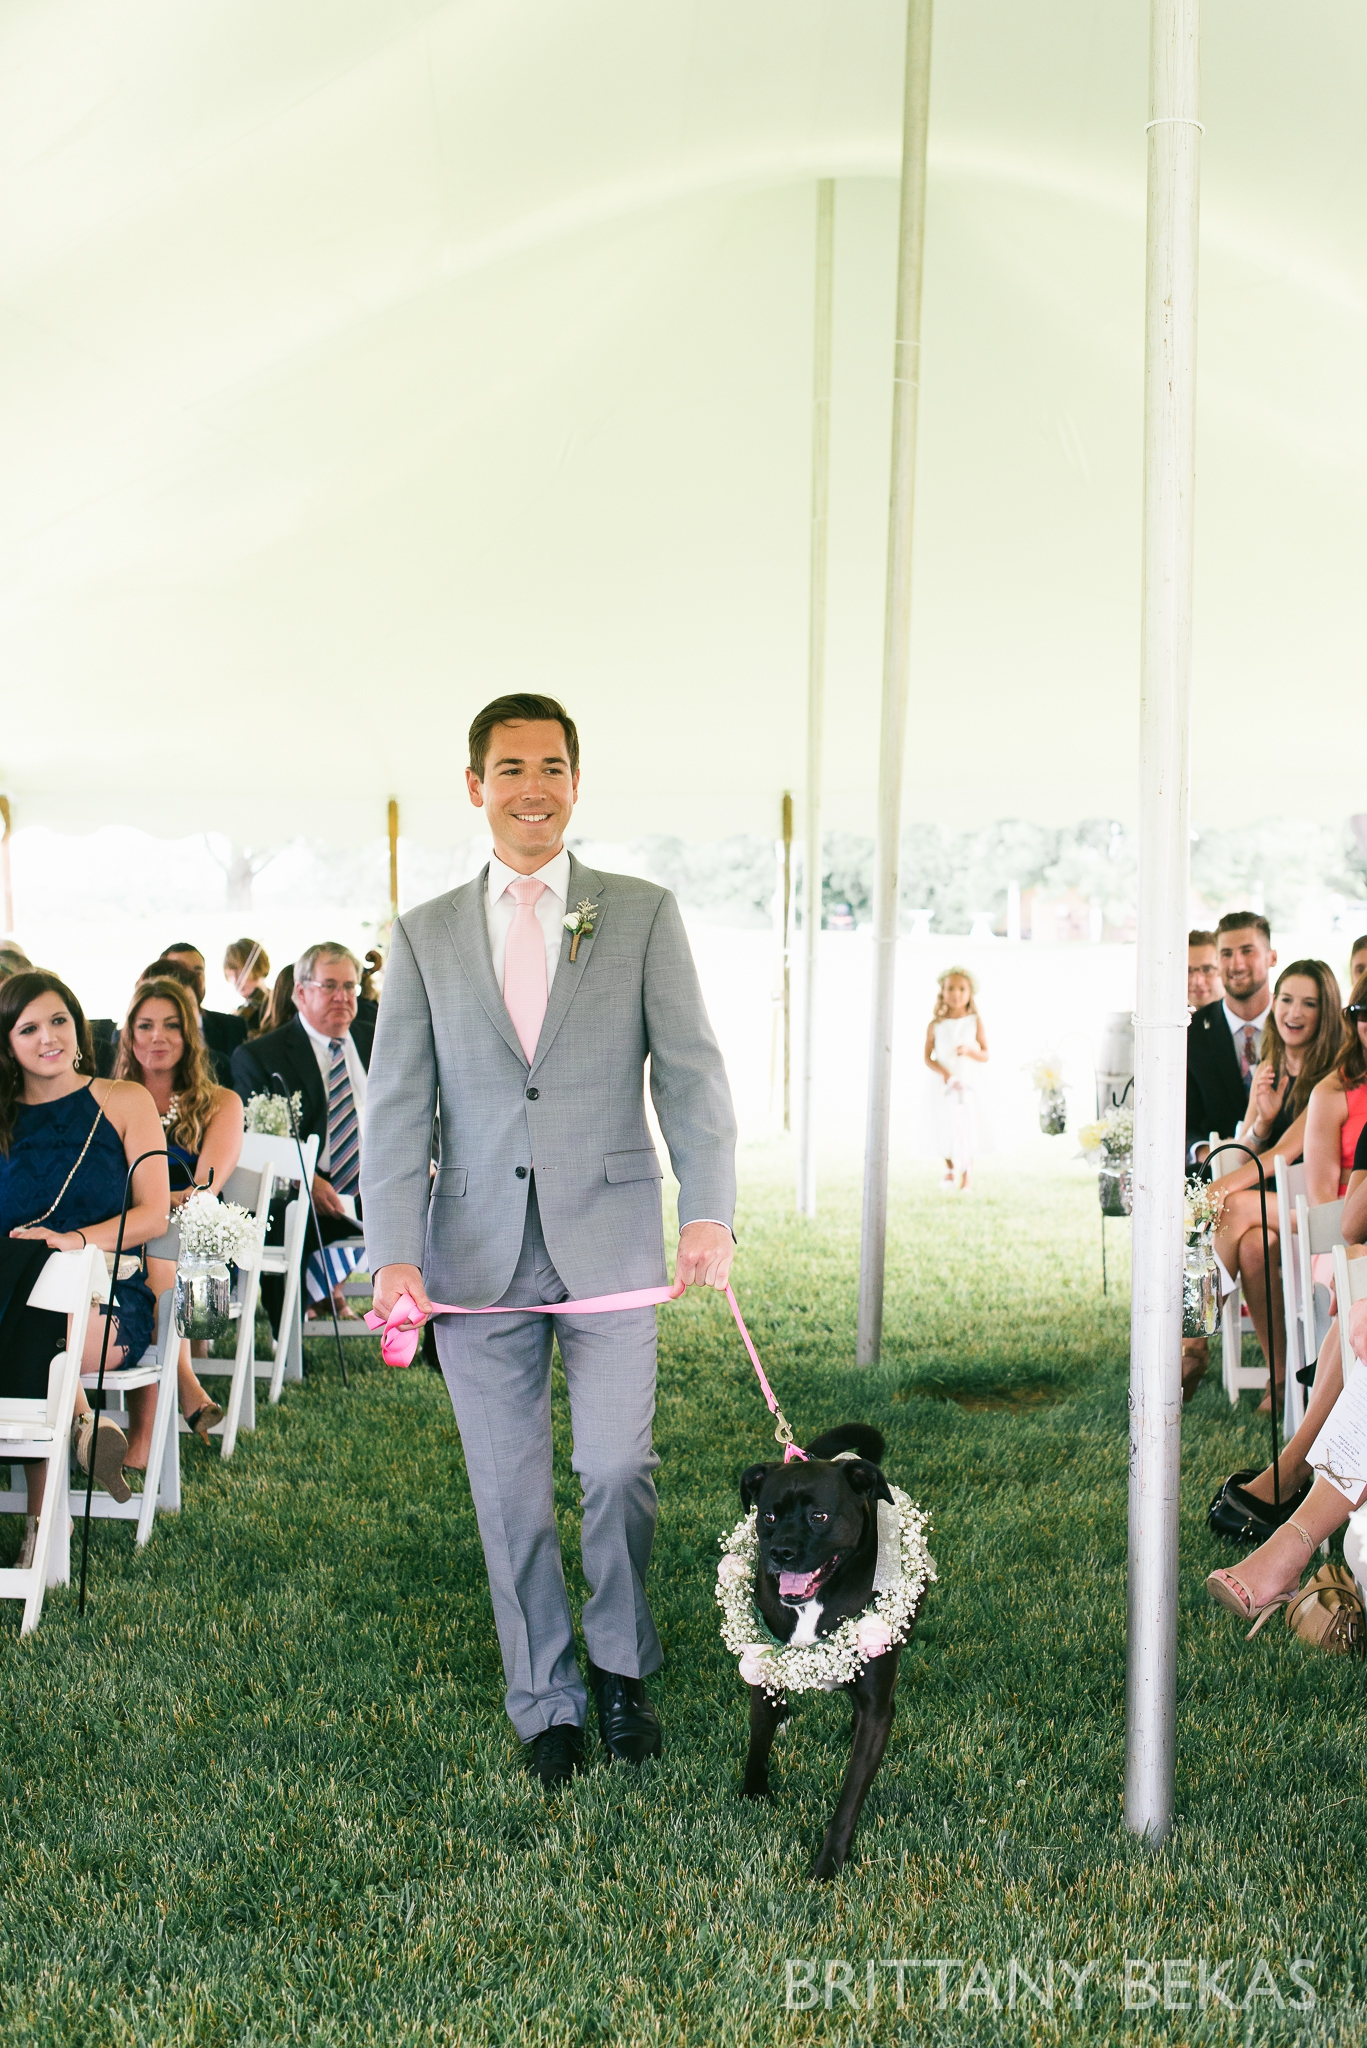 New Buffalo Wedding - Willow Harbor Vineyards Wedding Photos - Brittany Bekas Photography_0034